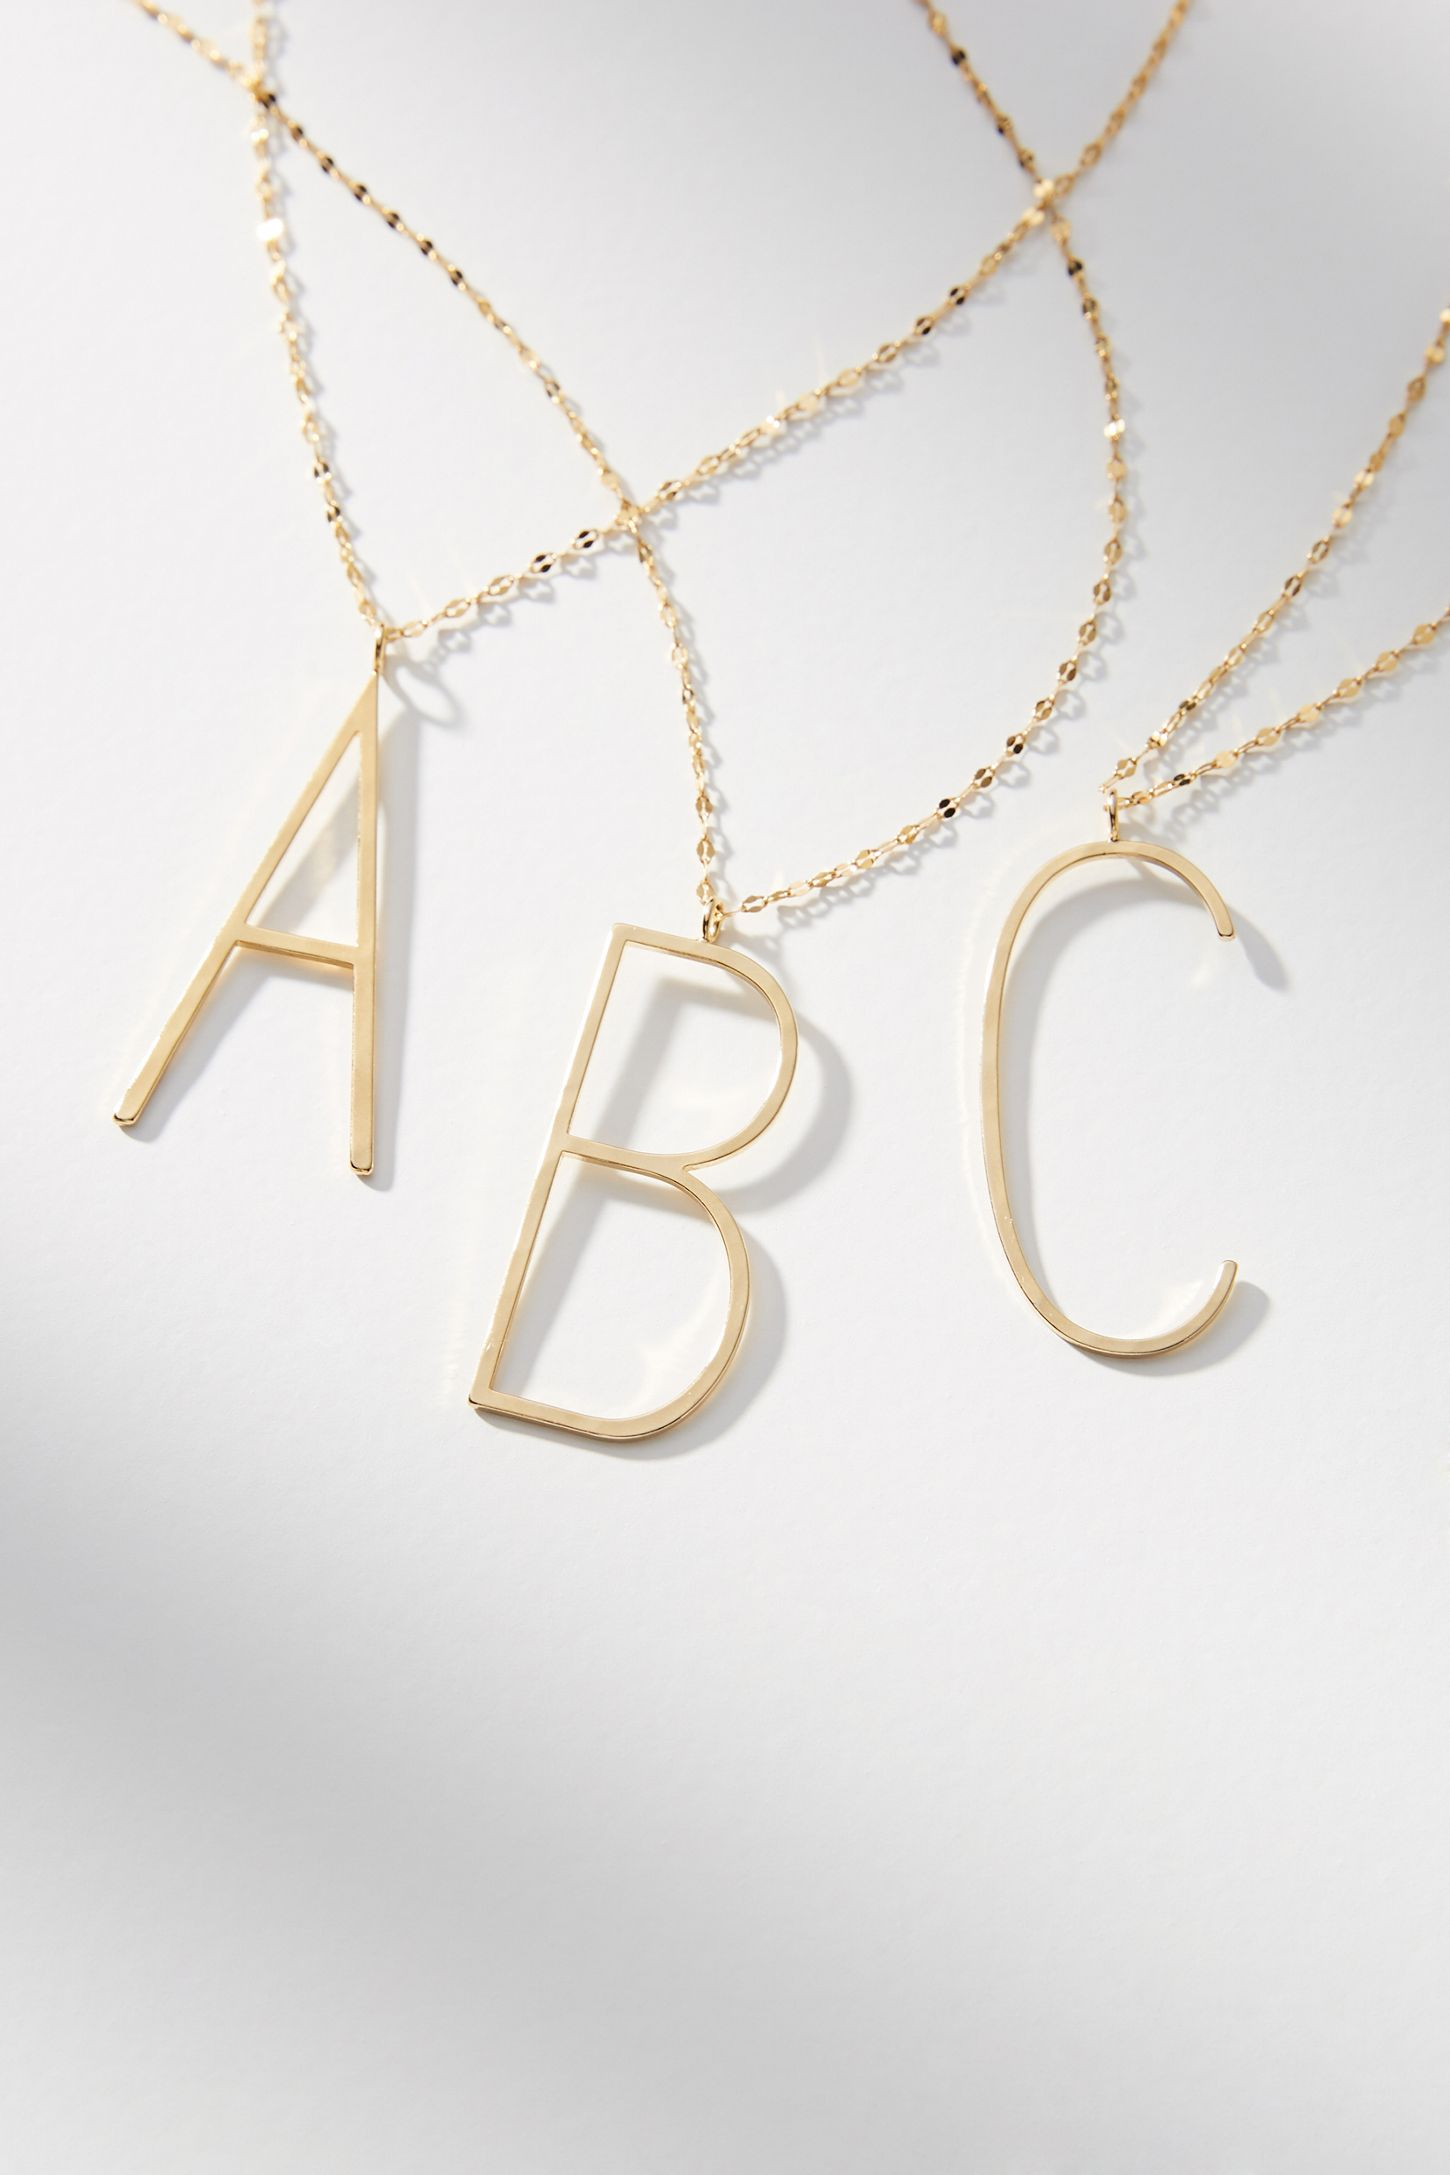 e2274a0cd0 Monogram Pendant Necklace